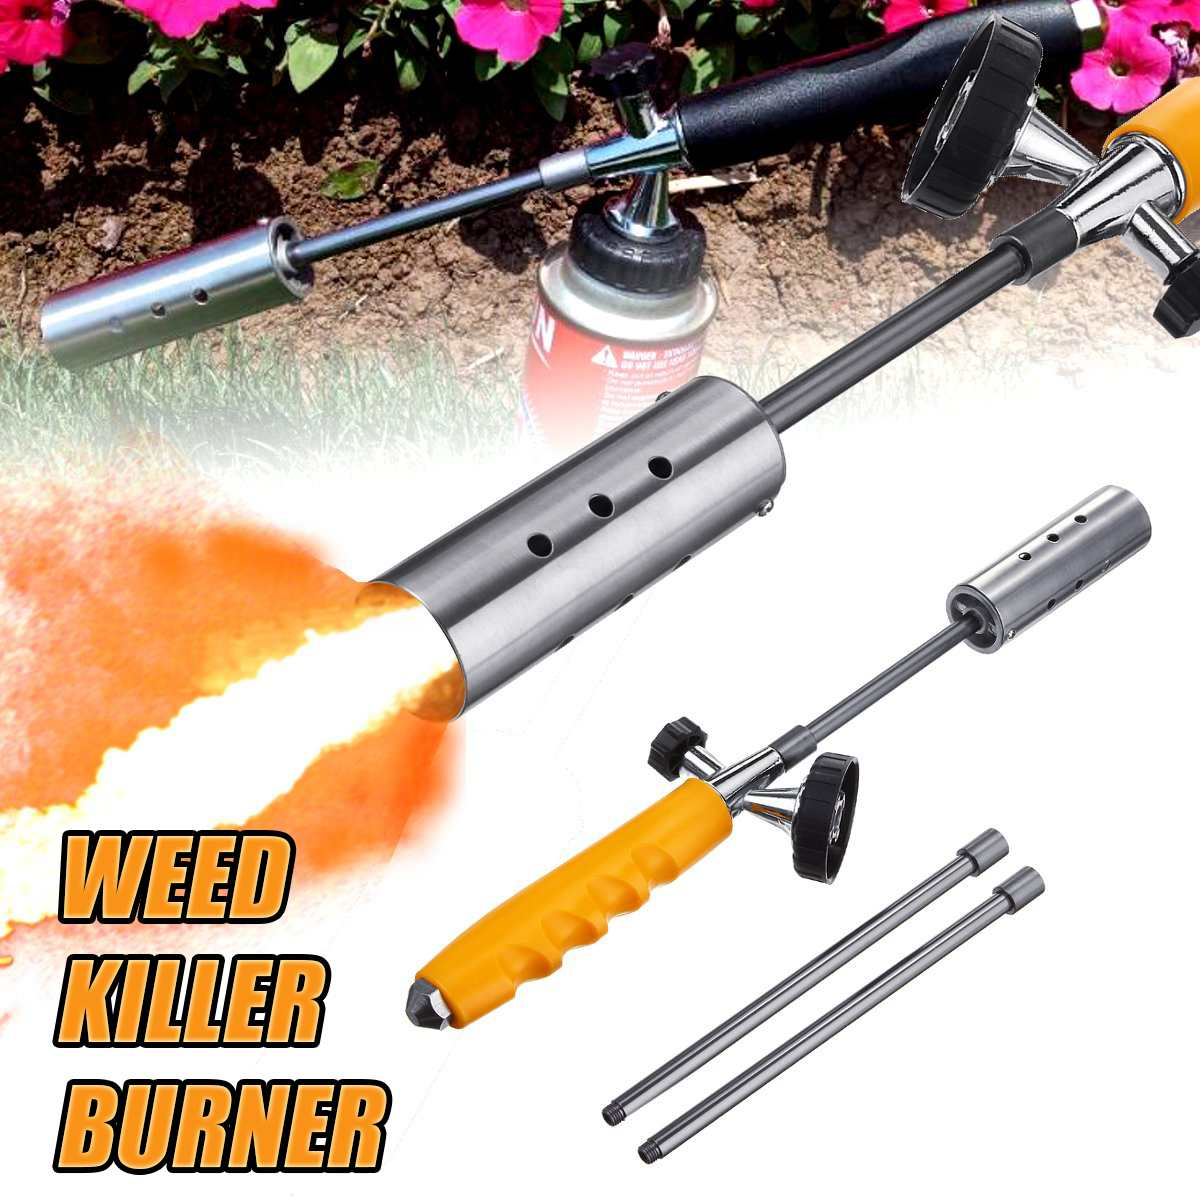 Waterproof Weeding Fires Guns Grass Burner Blowtorch Multipurpose Gas Torch Welding Gas Torch For Outdoor Picnic BBQ & Weeders